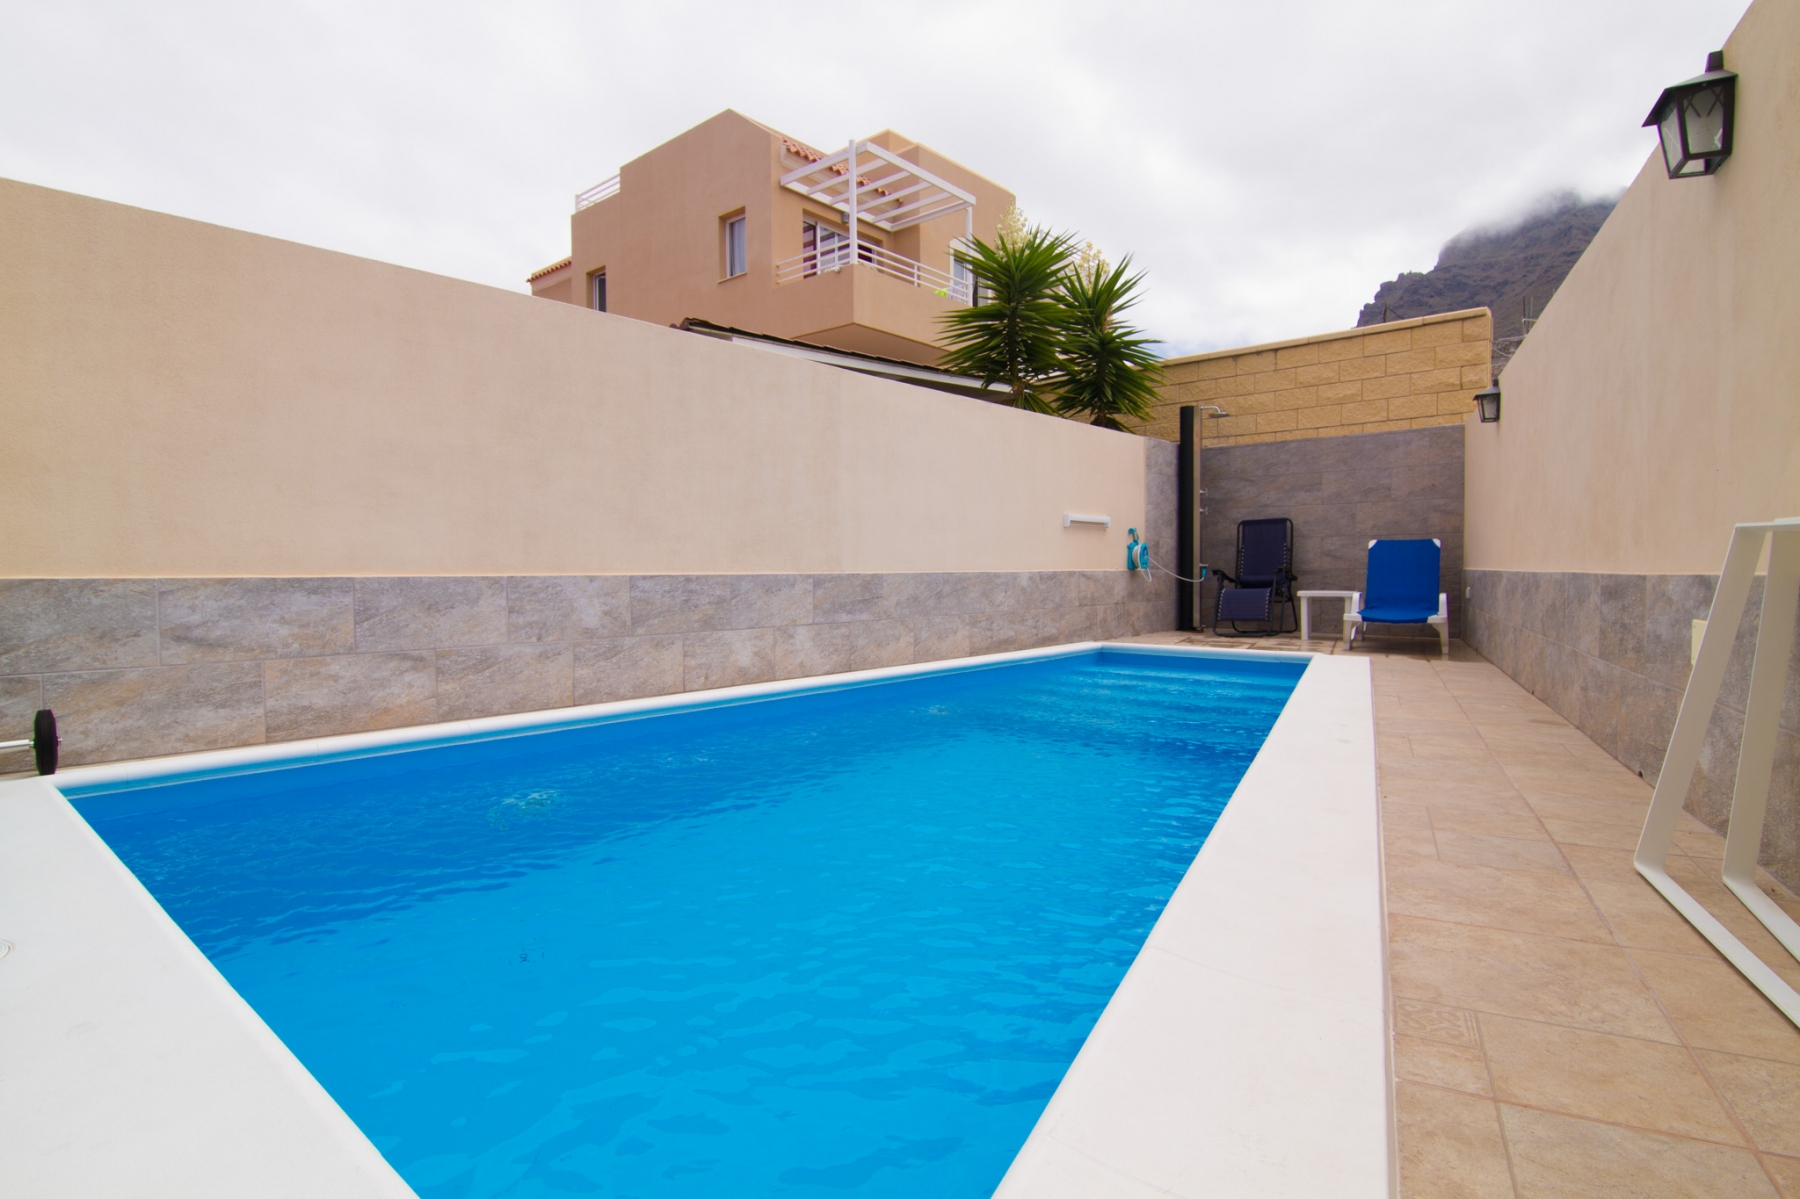 Properties for Sale in Tenerife, Canary Islands, Spain | SylkWayStar Real Estate. 4 bedrooms Townhouse - El Madroñal . Image-26210